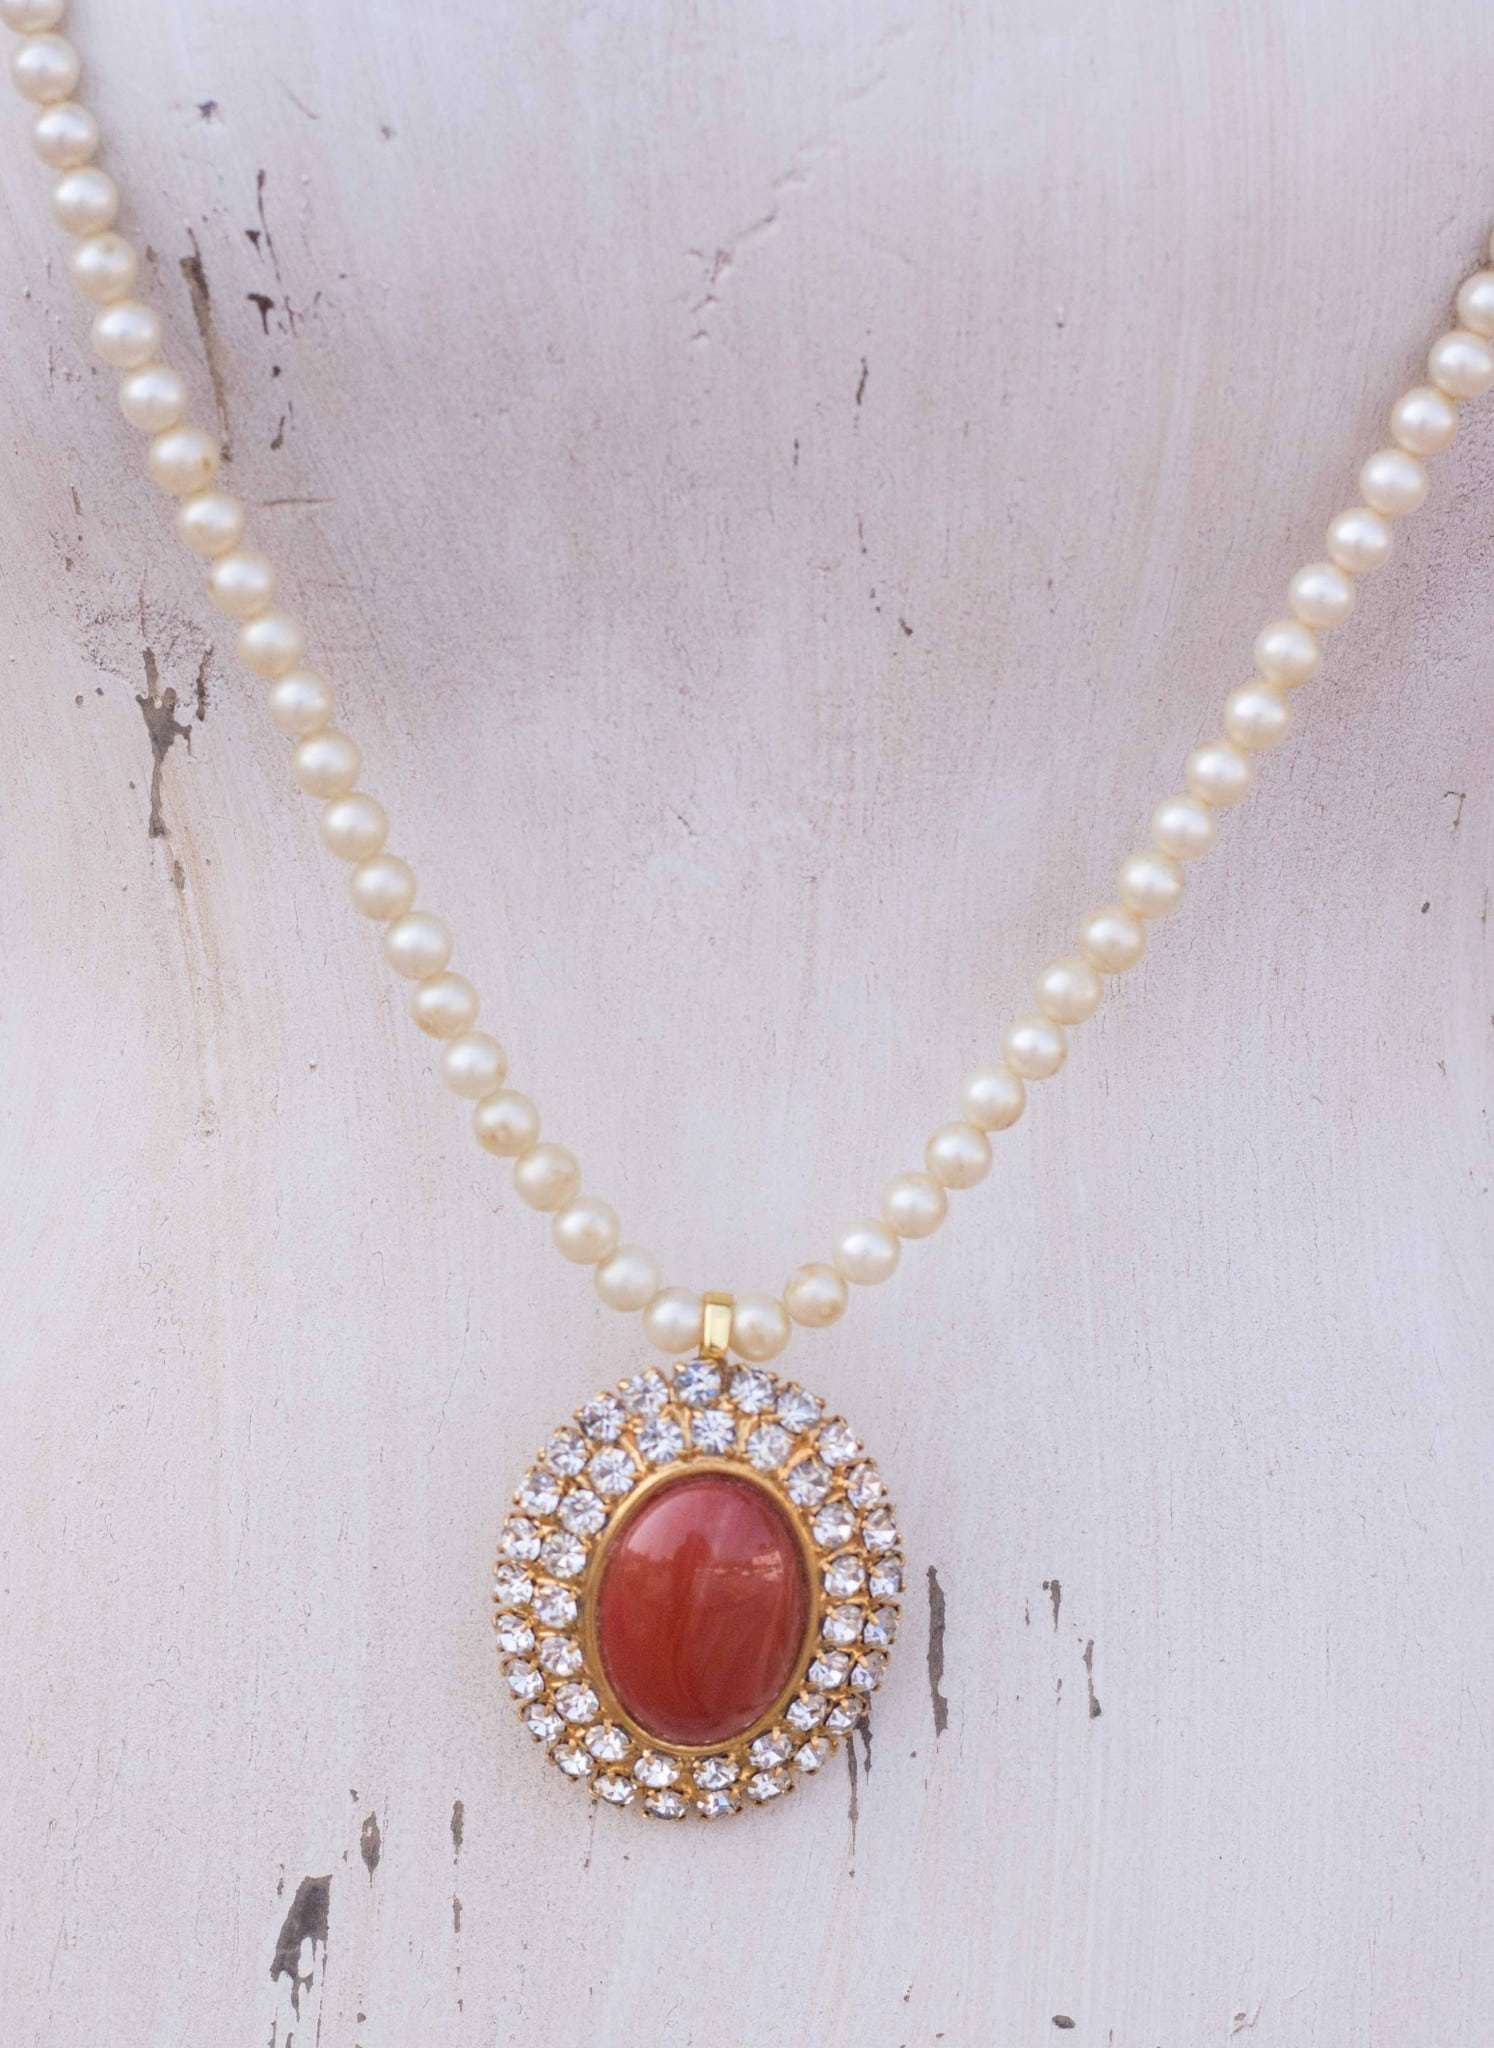 Vintage Necklace with Rhinestone Pendant